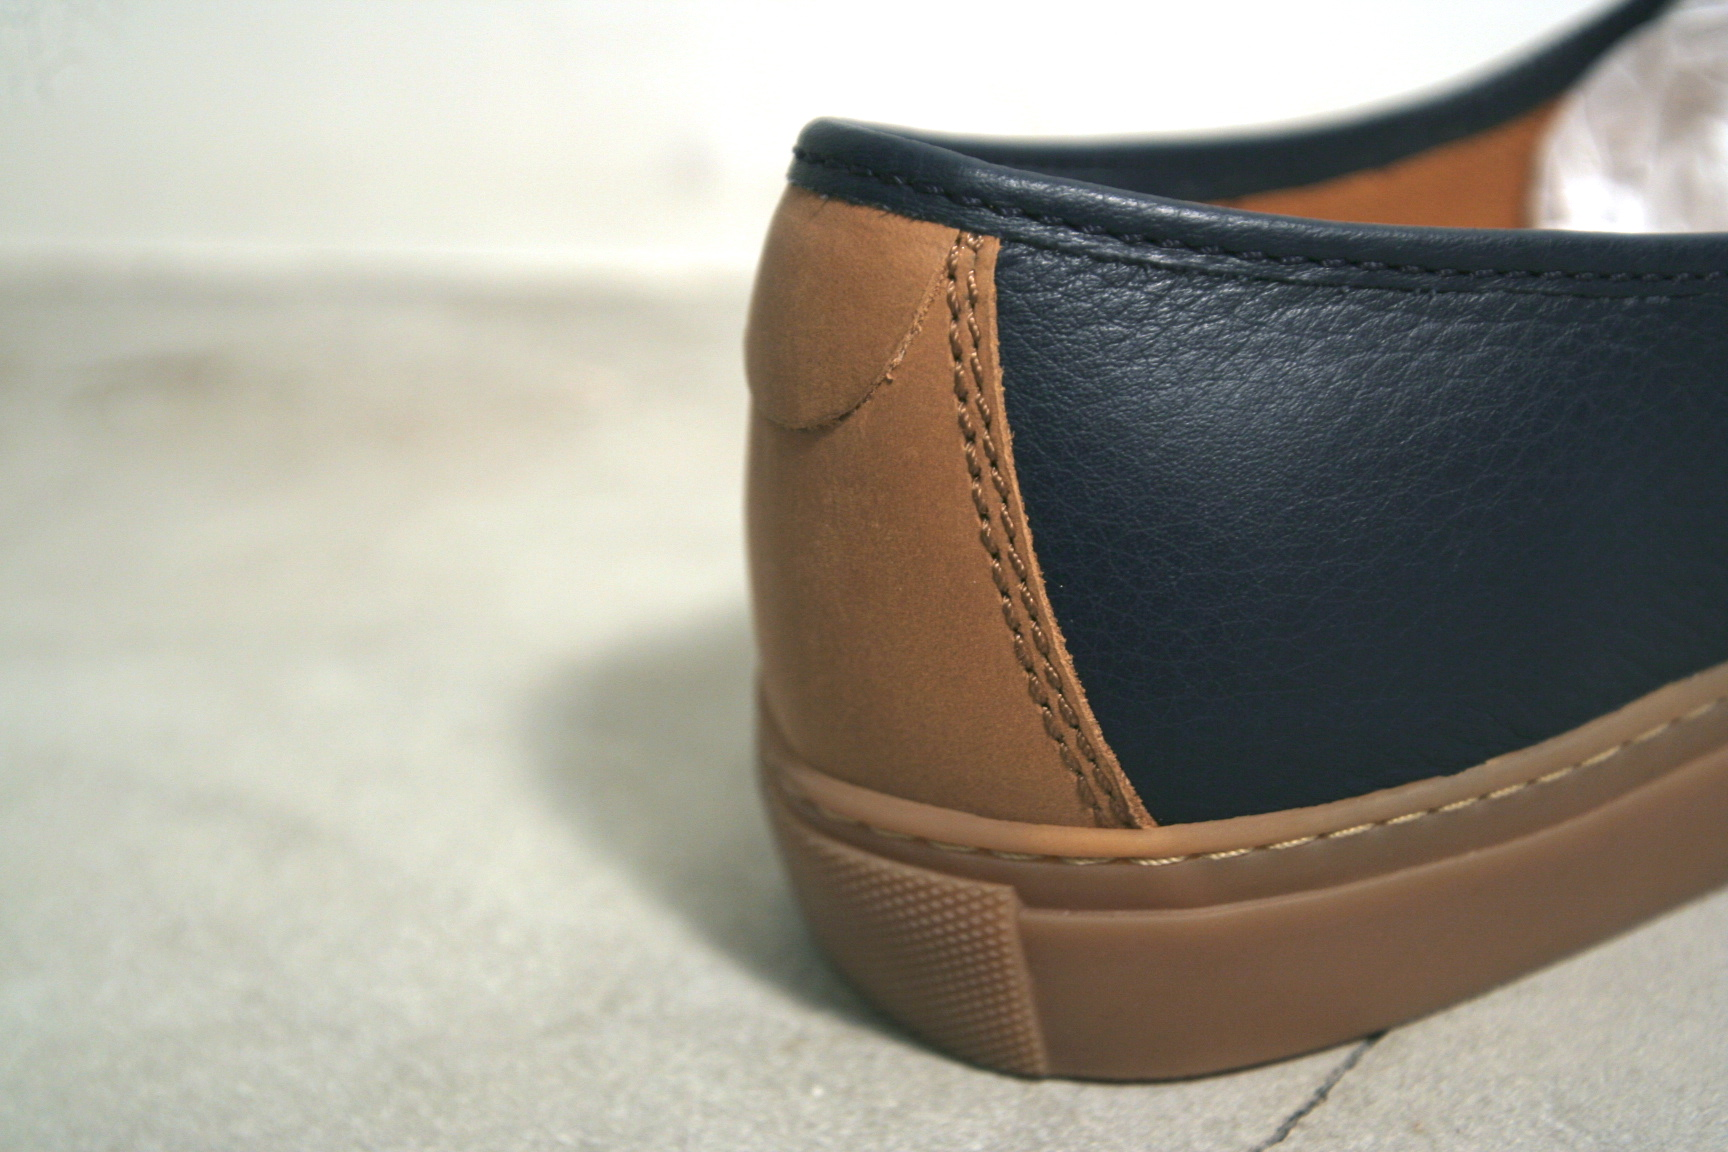 """TRACEY NEULS × LINKS(トレーシーニュールズ) """"NIELS Leather Slip-on With Rubber Sole(ニールズ-レザスリッポンラバーソール)"""""""